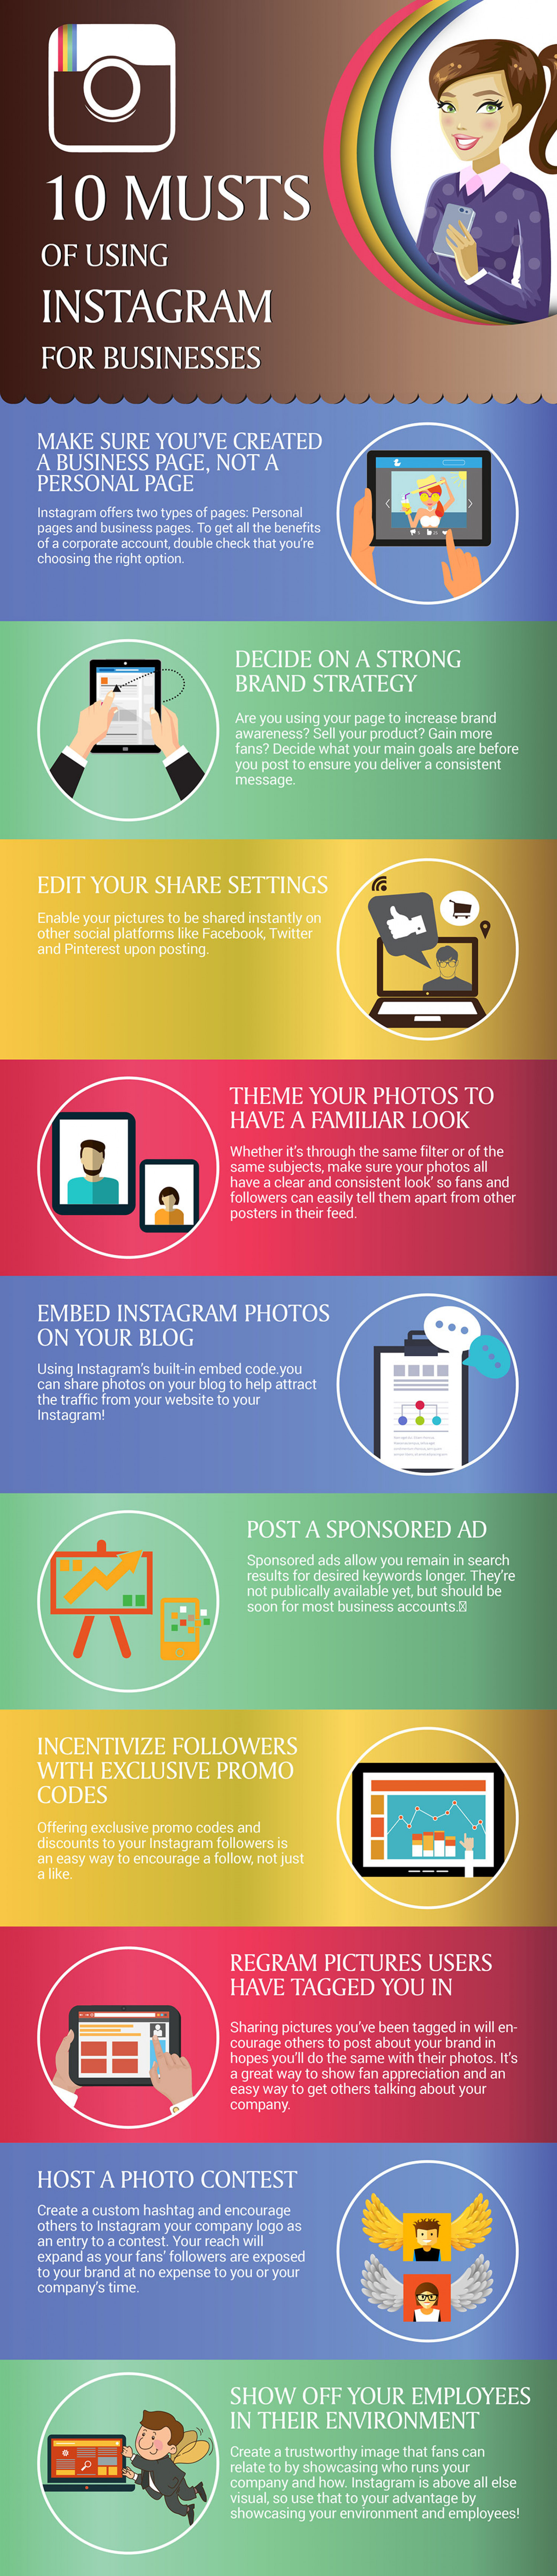 10 musts of using Instagram for businesses Infographic